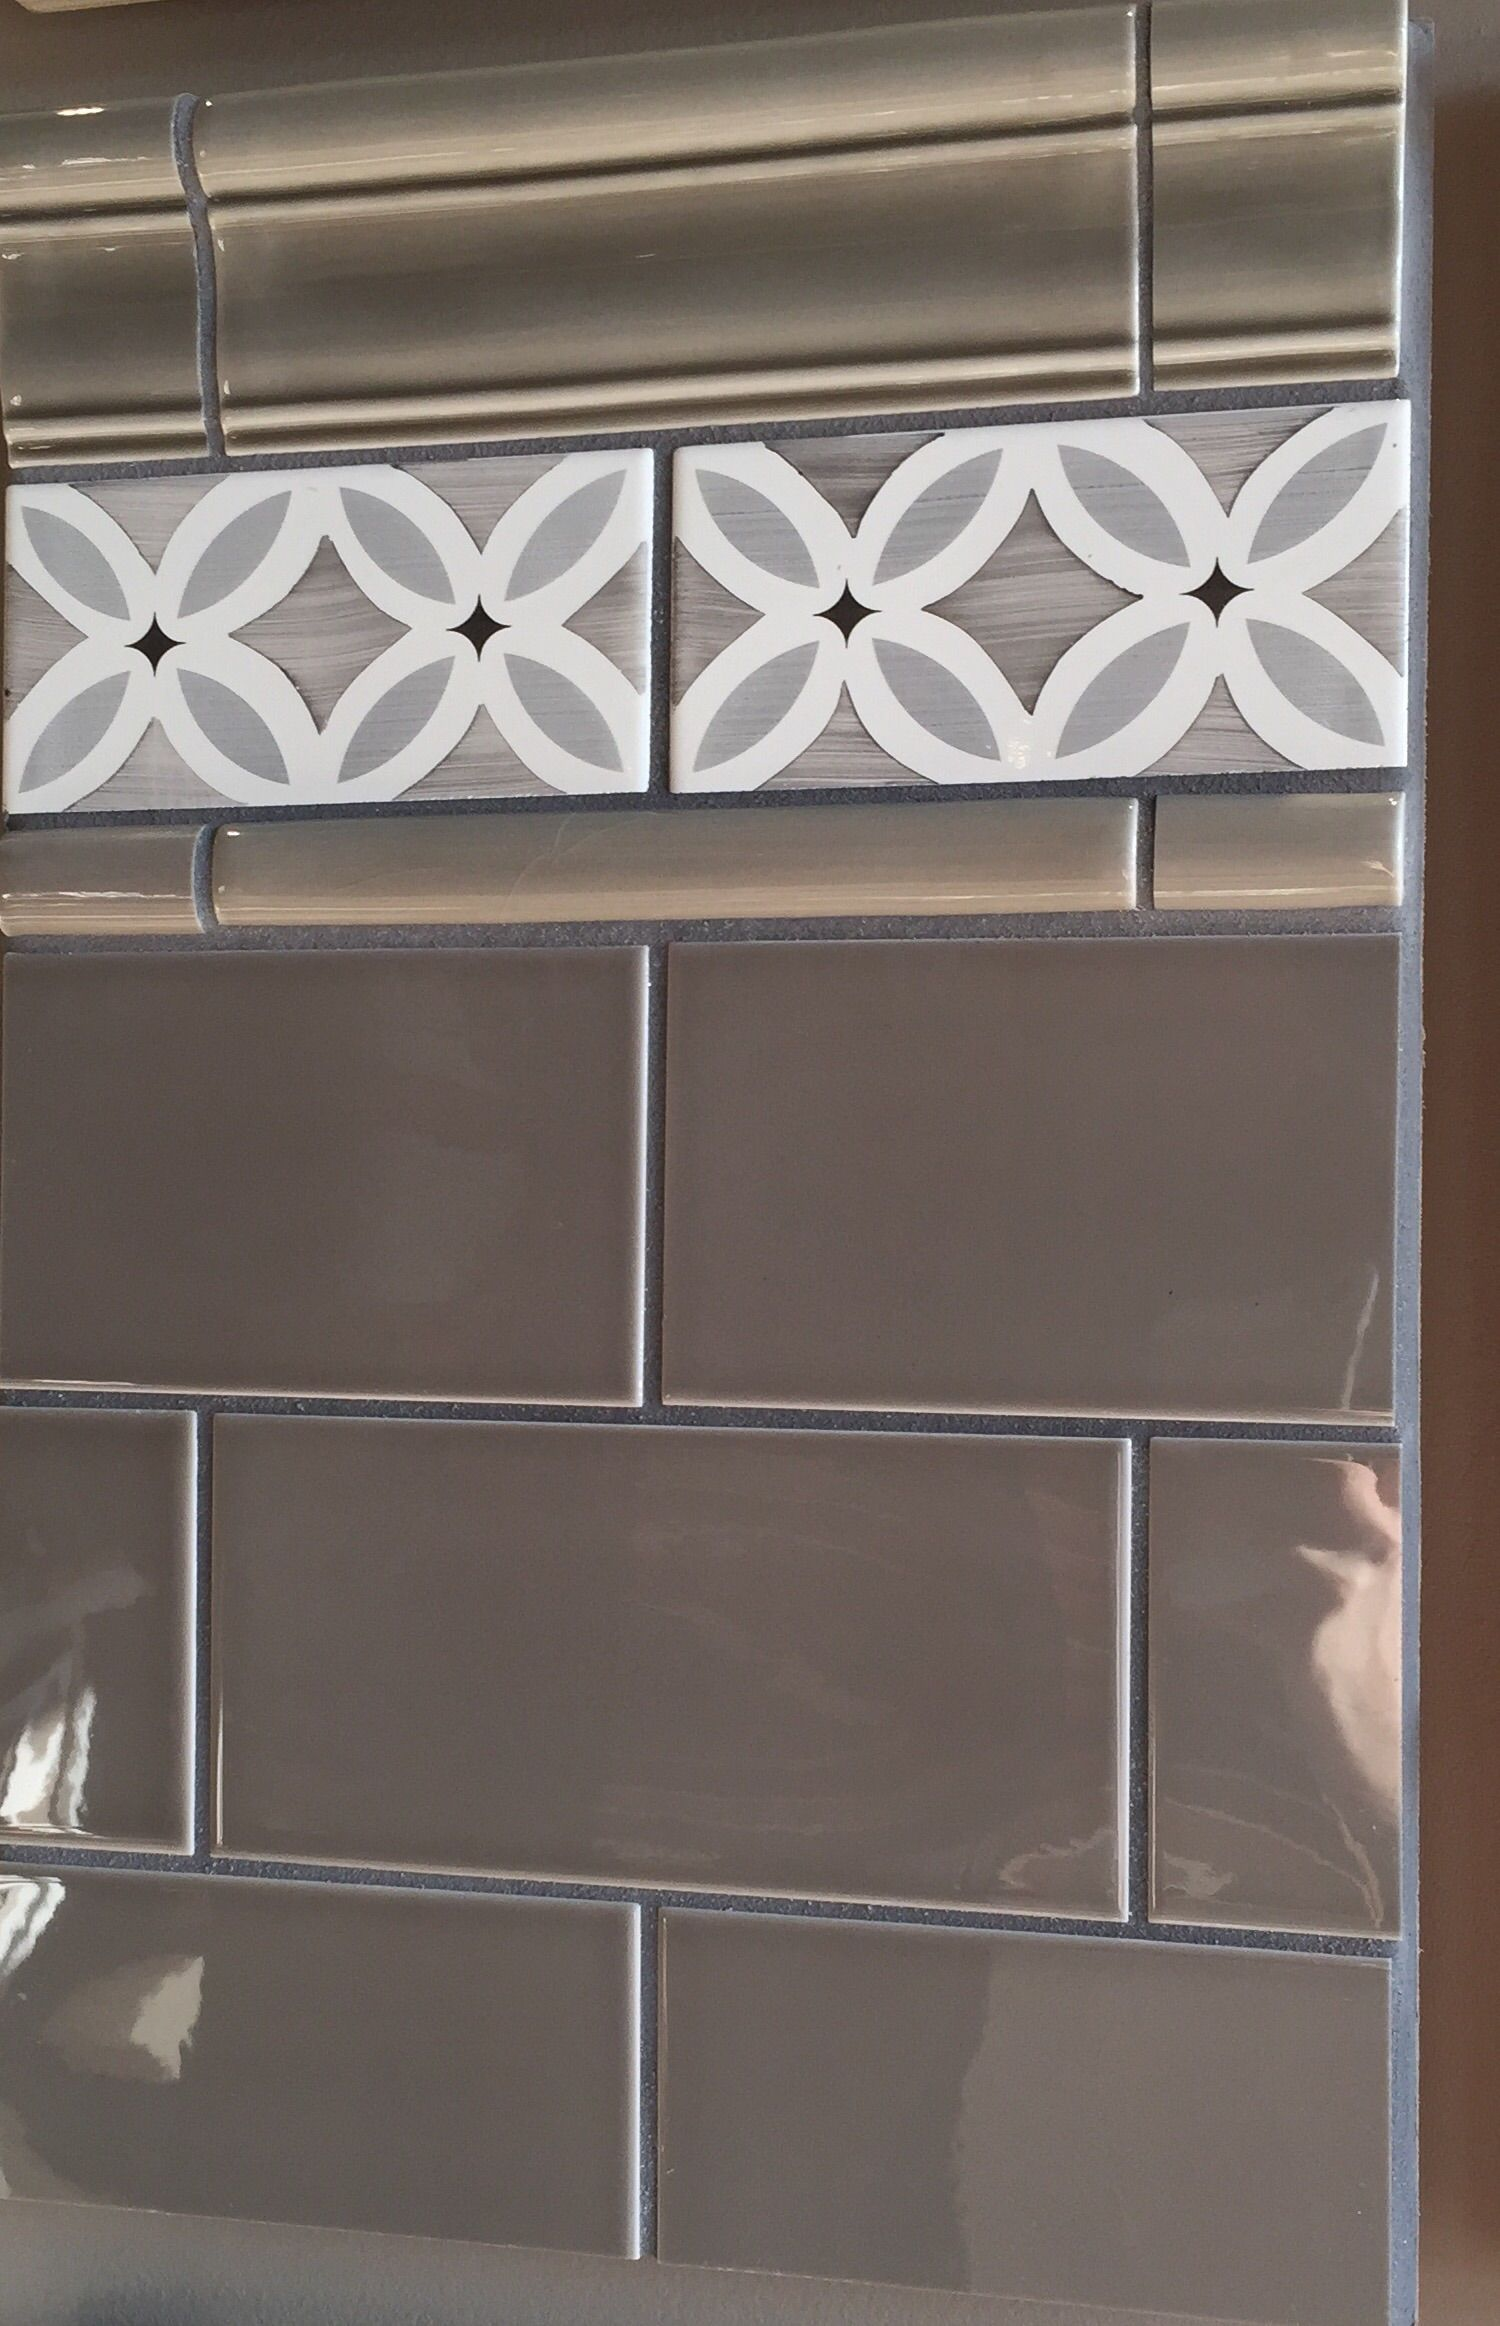 3x6 Subway Tiles With Hand Painted Deco Pieces Ceramic Tiles